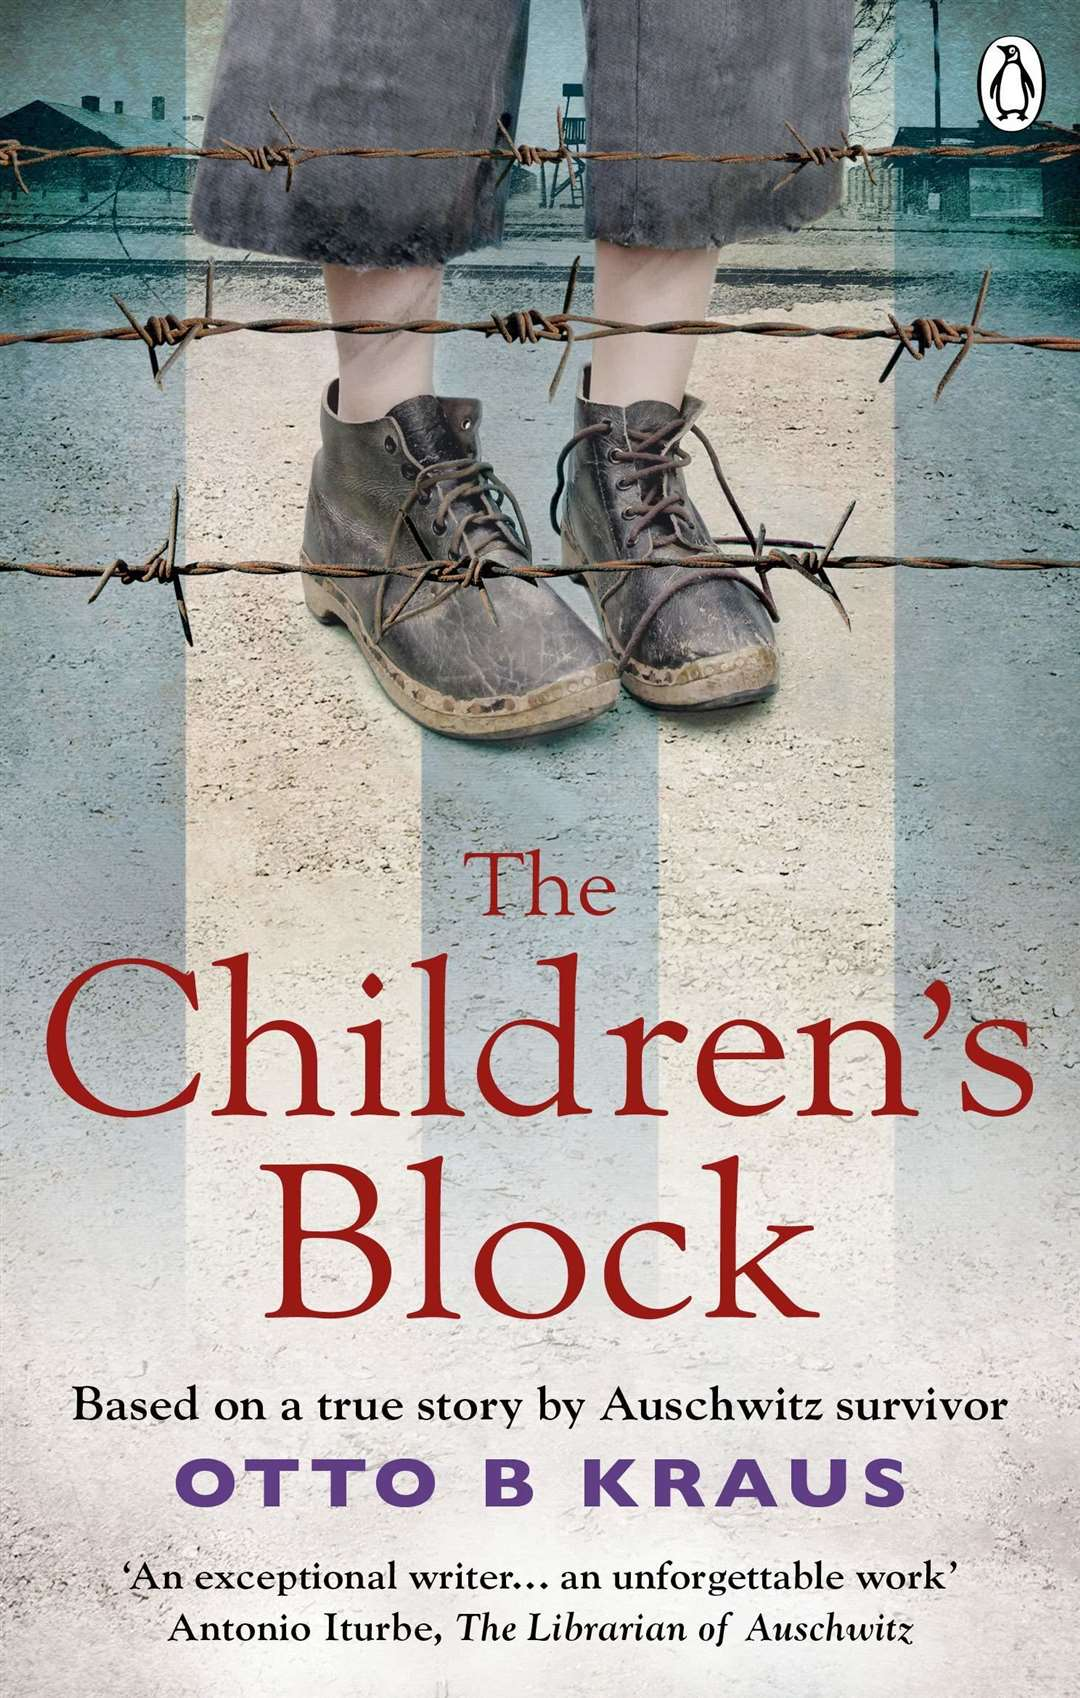 The Children's Block by Otto B Kraus. Bookmark in Spalding's Book of the Week.